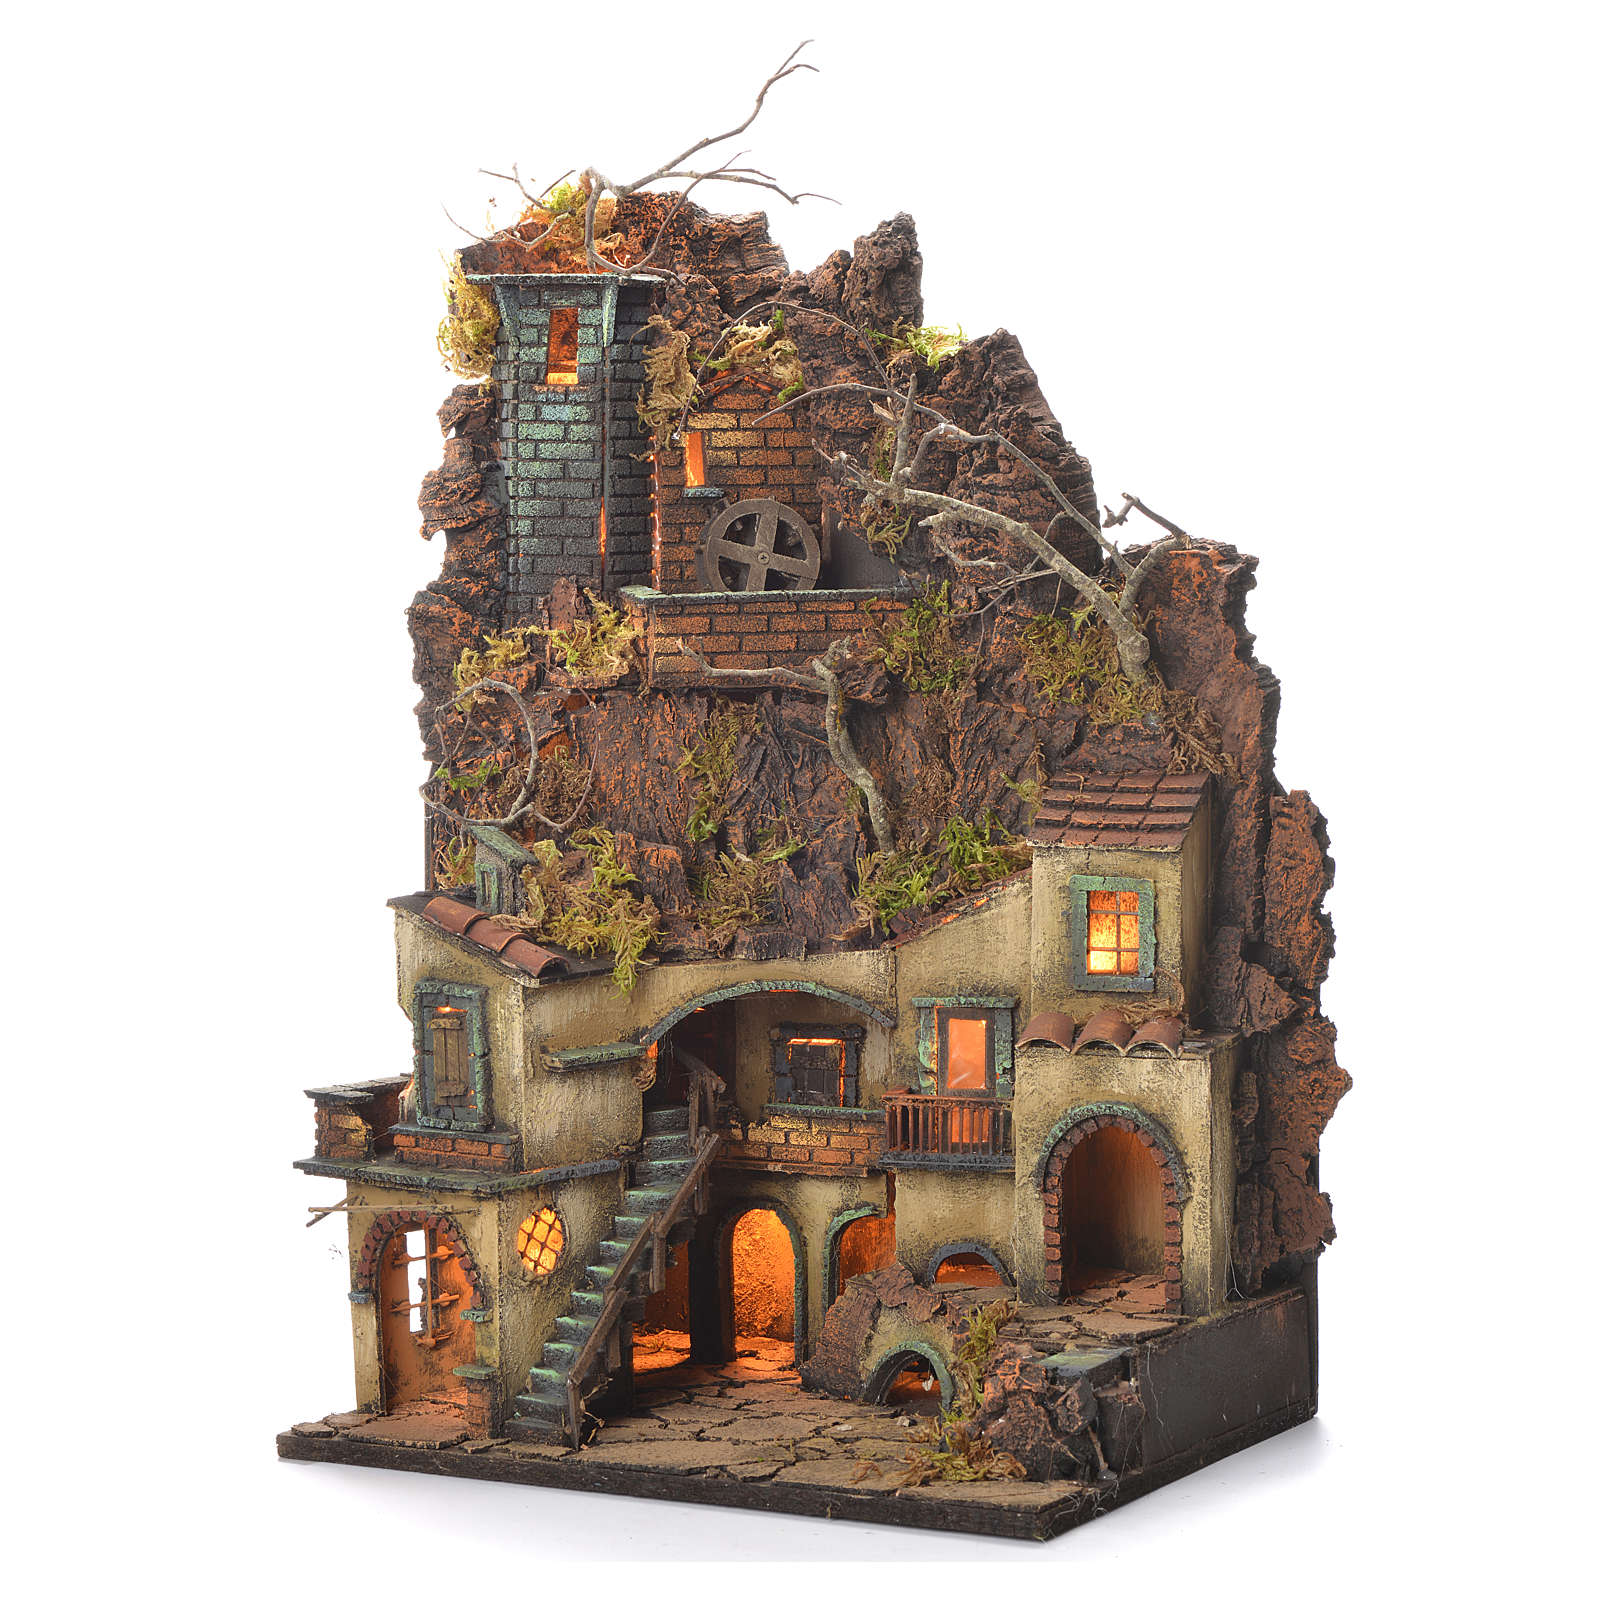 Neapolitan Nativity Village, 1700 style with castle and mill 65x40x30cm 4